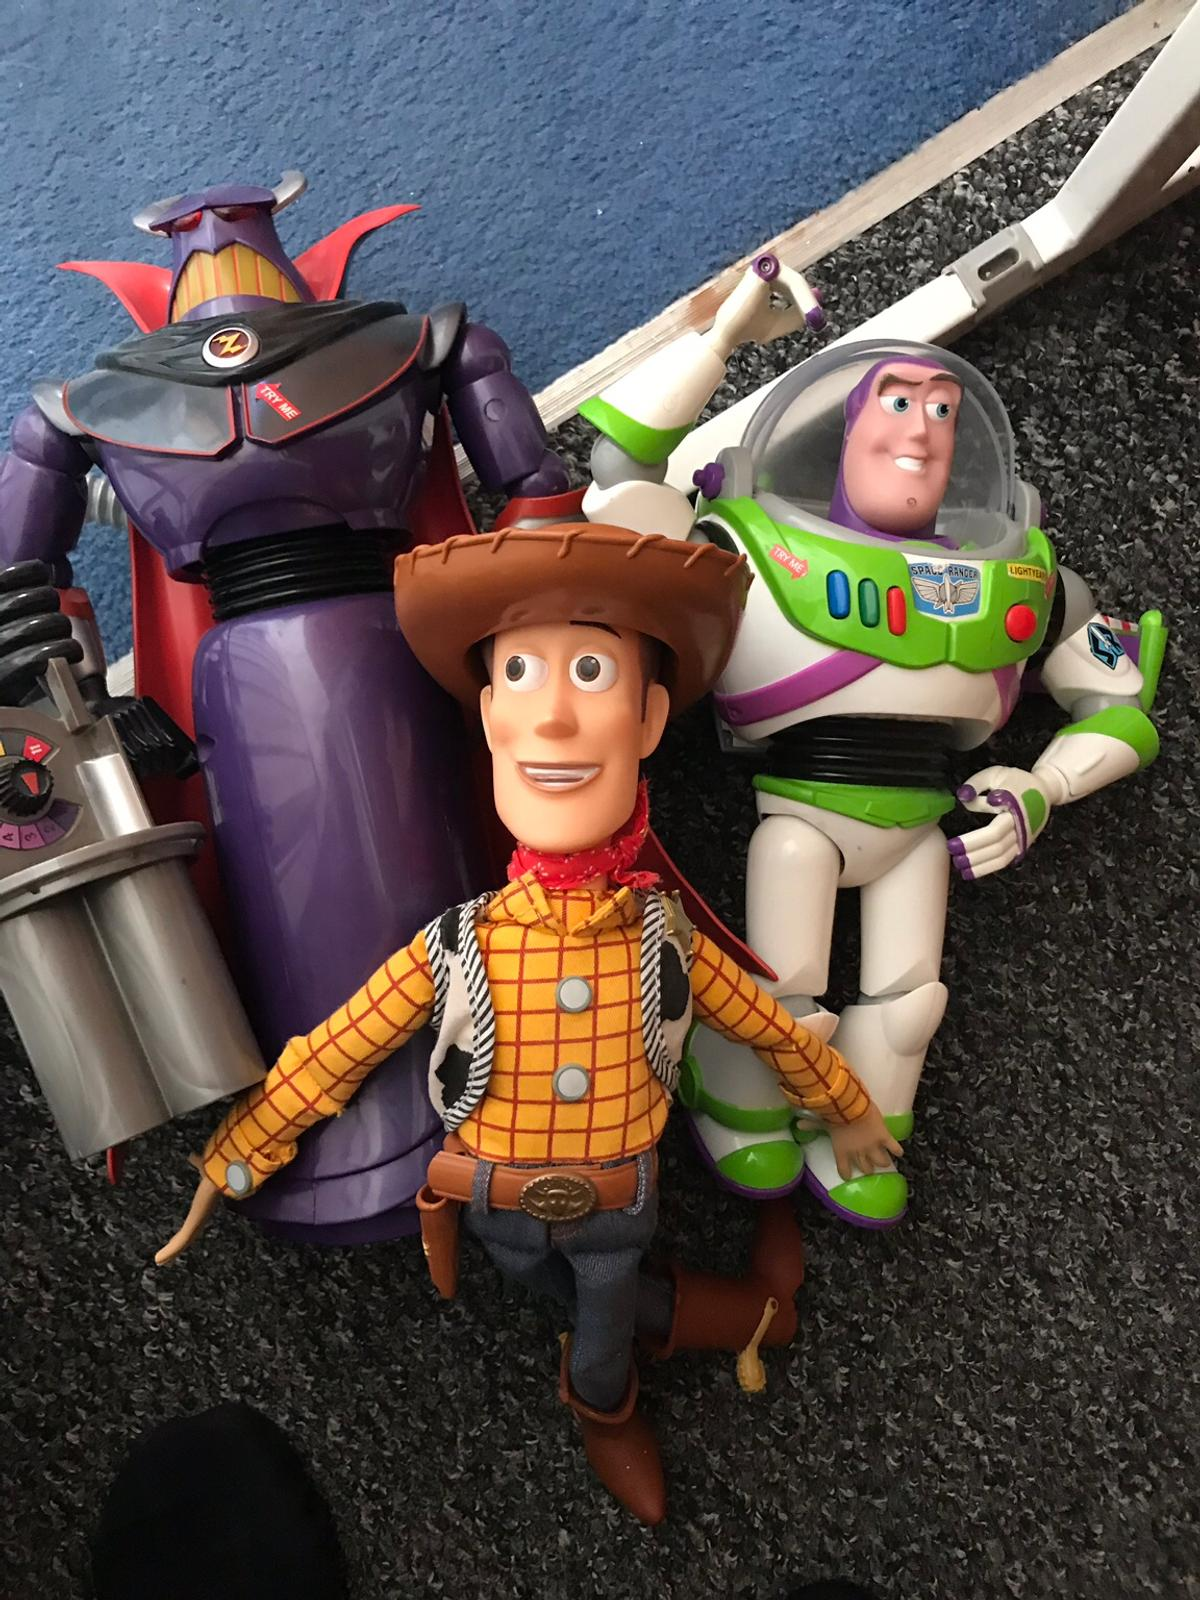 Toy story toys for sale smoke free home in DY2 Dudley for £15.00 for sale    Shpock